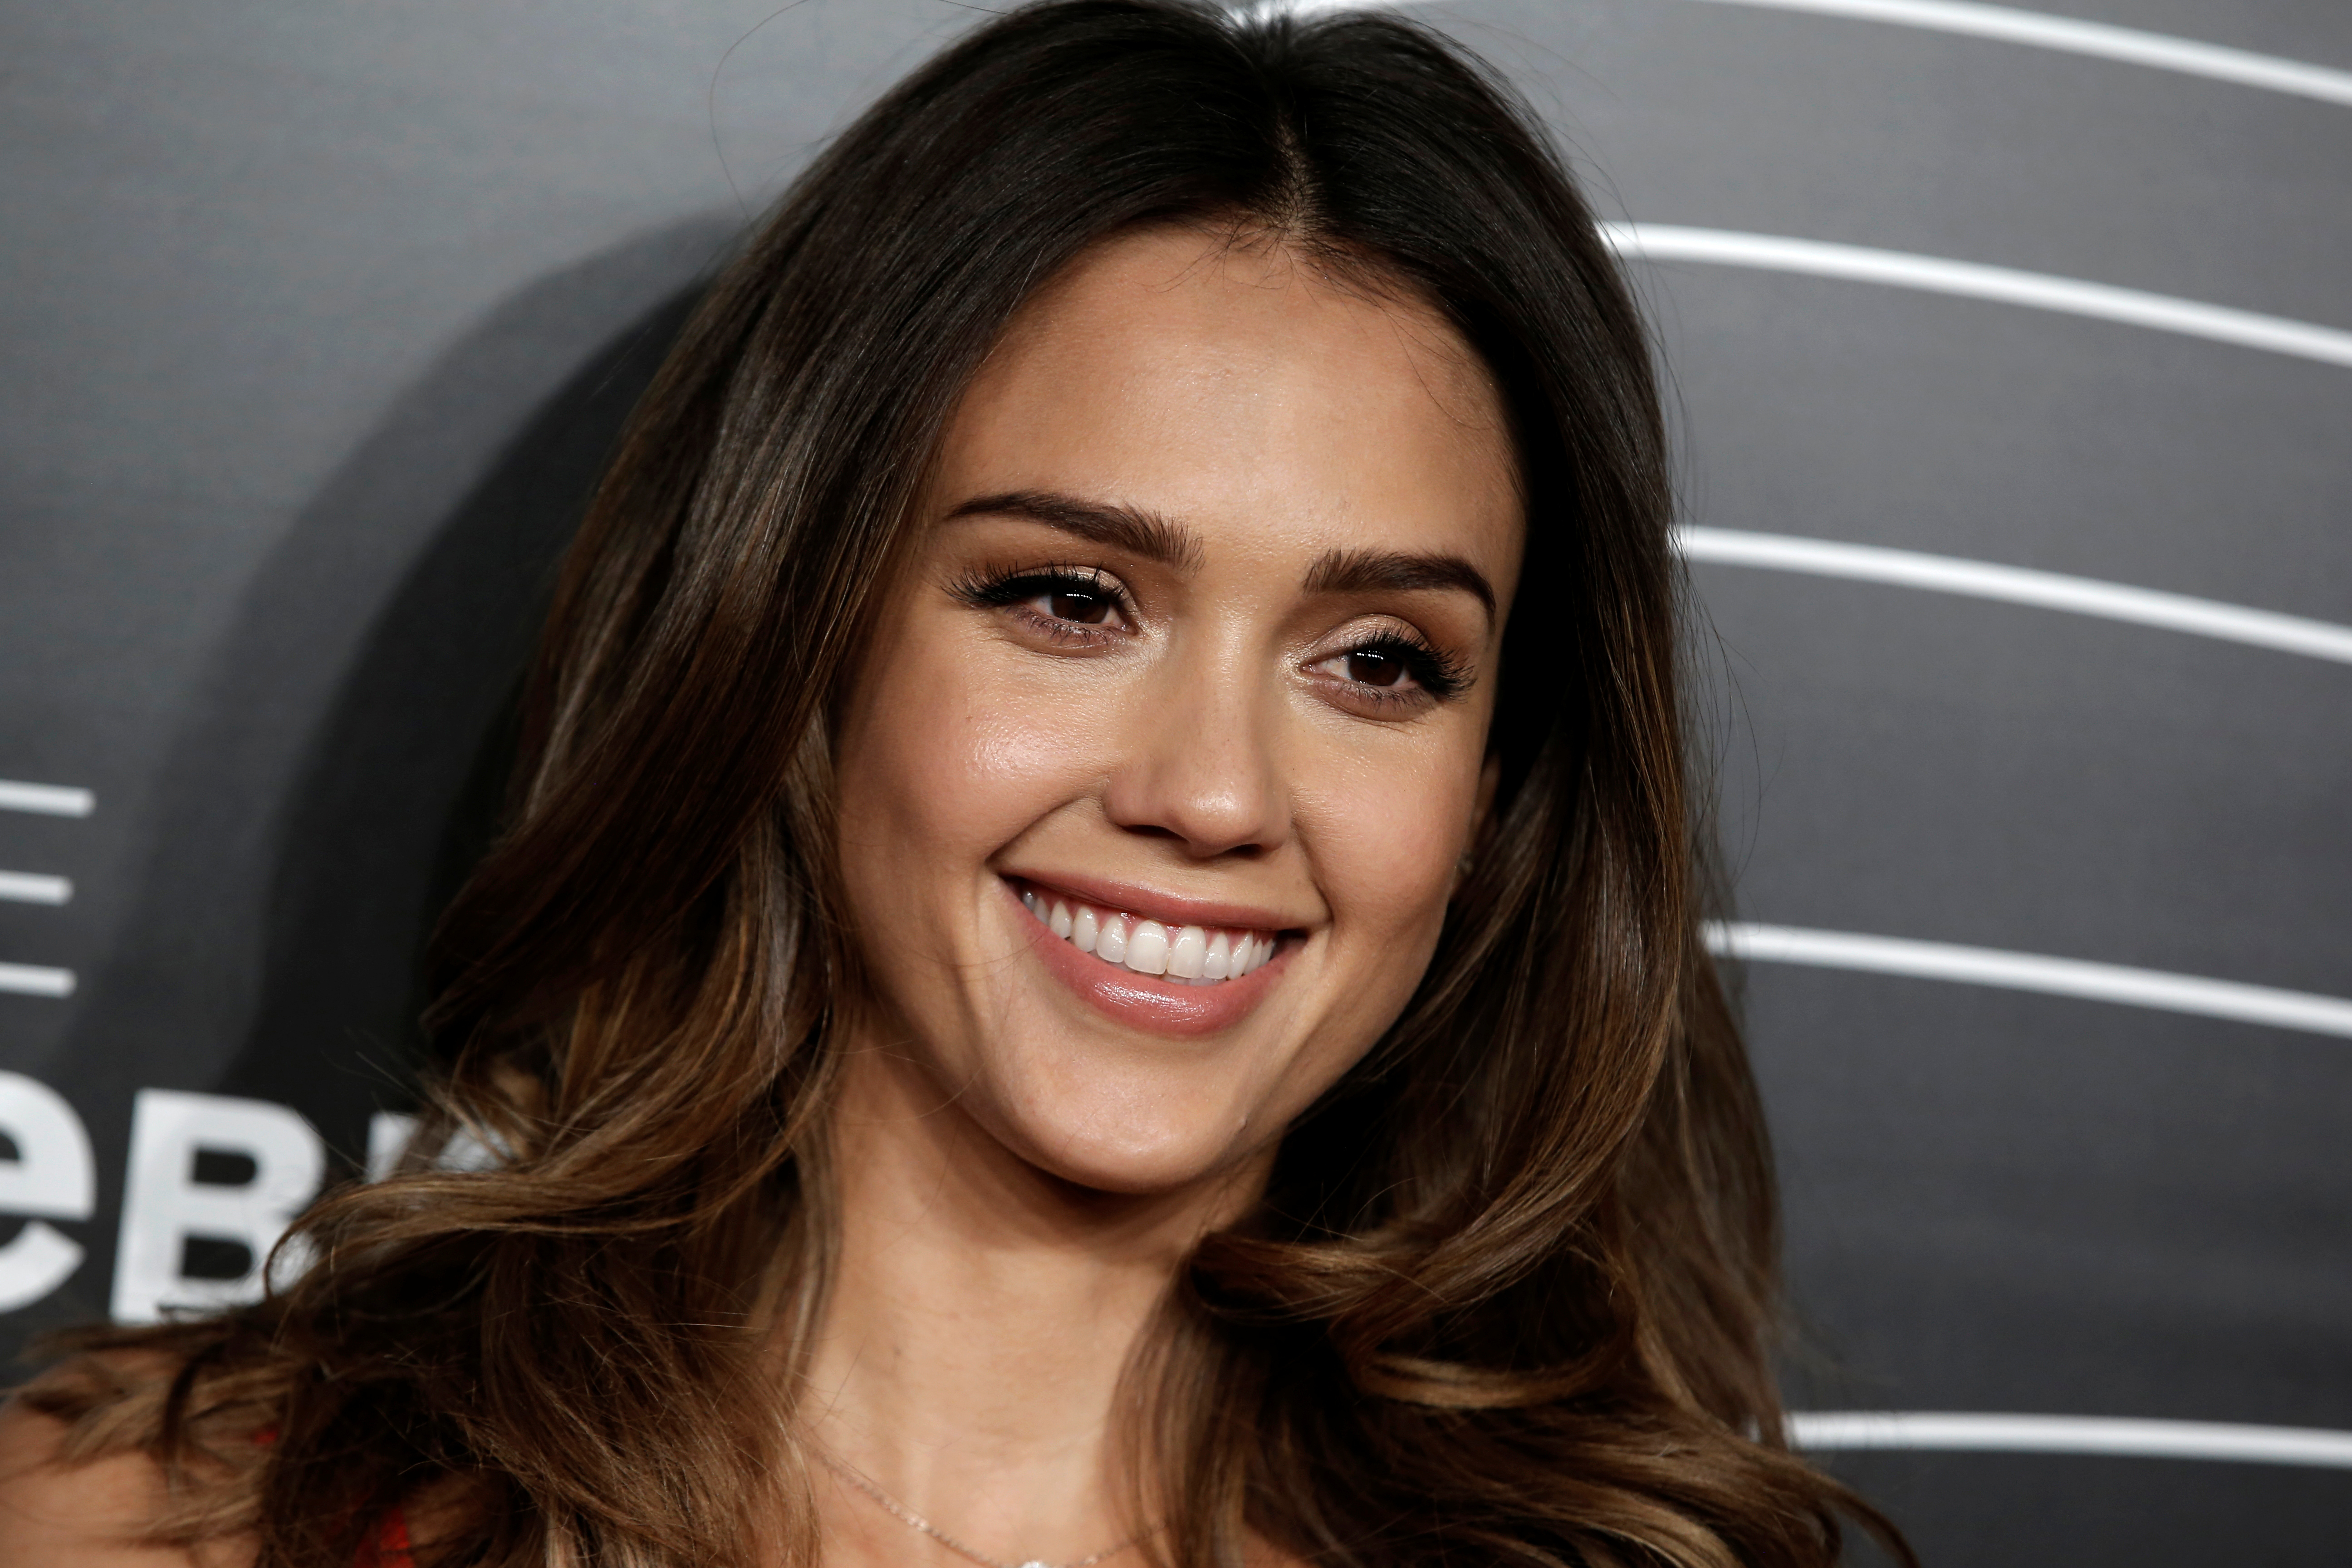 Actress and founder of the Honest Company Jessica Alba poses as she arrives for the 20th Annual Webby Awards in Manhattan, New York, U.S., May 16, 2016. REUTERS/Mike Segar